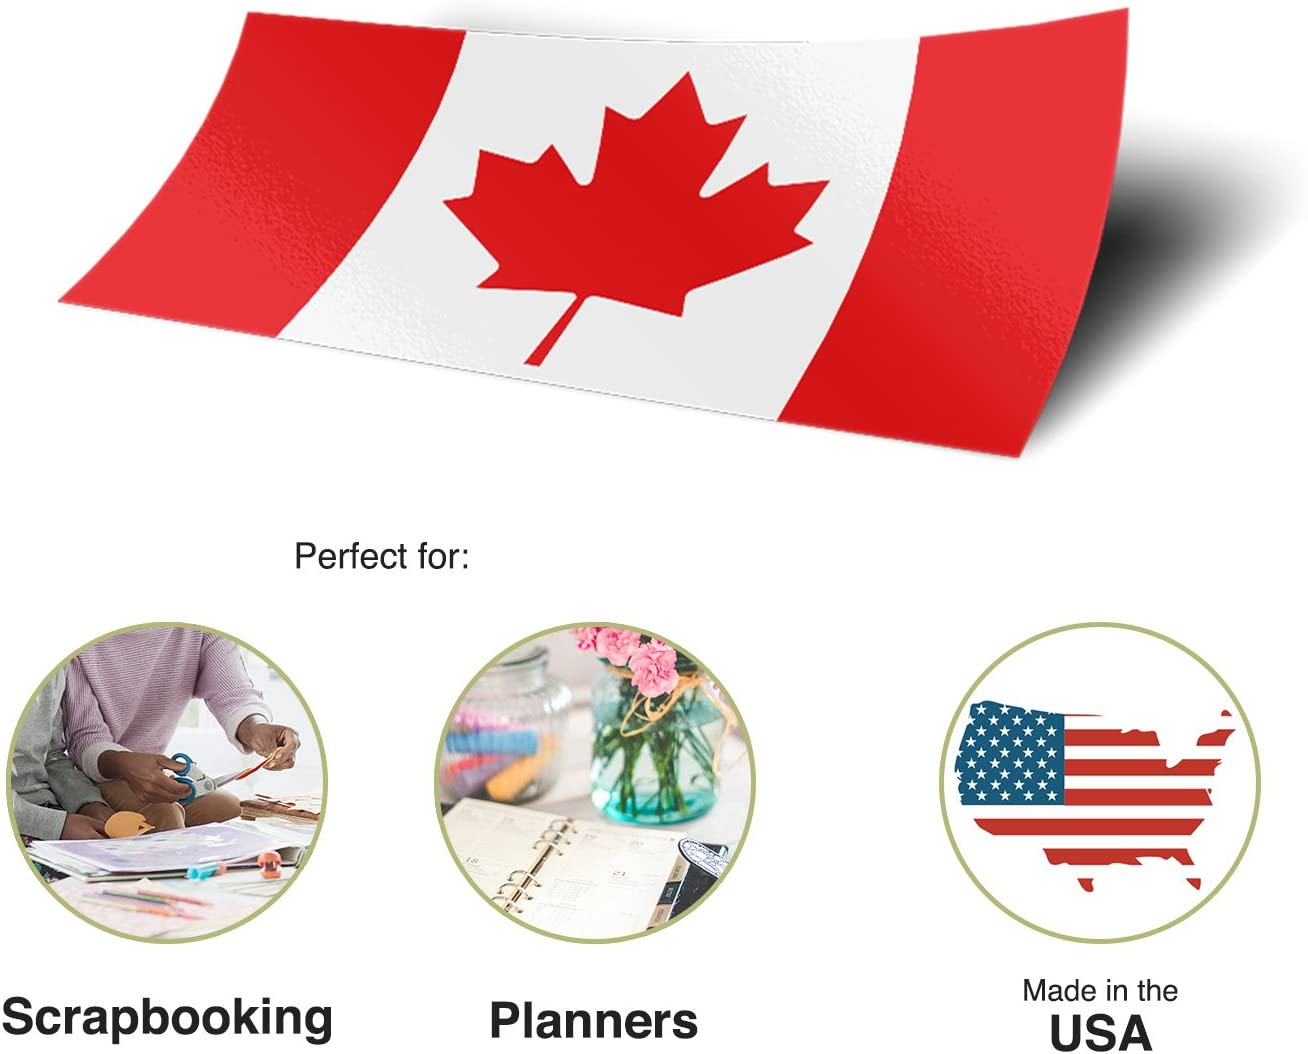 Desert Cactus Canada Canadian Country Flag Sticker Decal 1 Inch Rectangle Two Sheets 50 Total Pieces Kids Logo Scrapbook Car Vinyl Window Bumper Laptop R